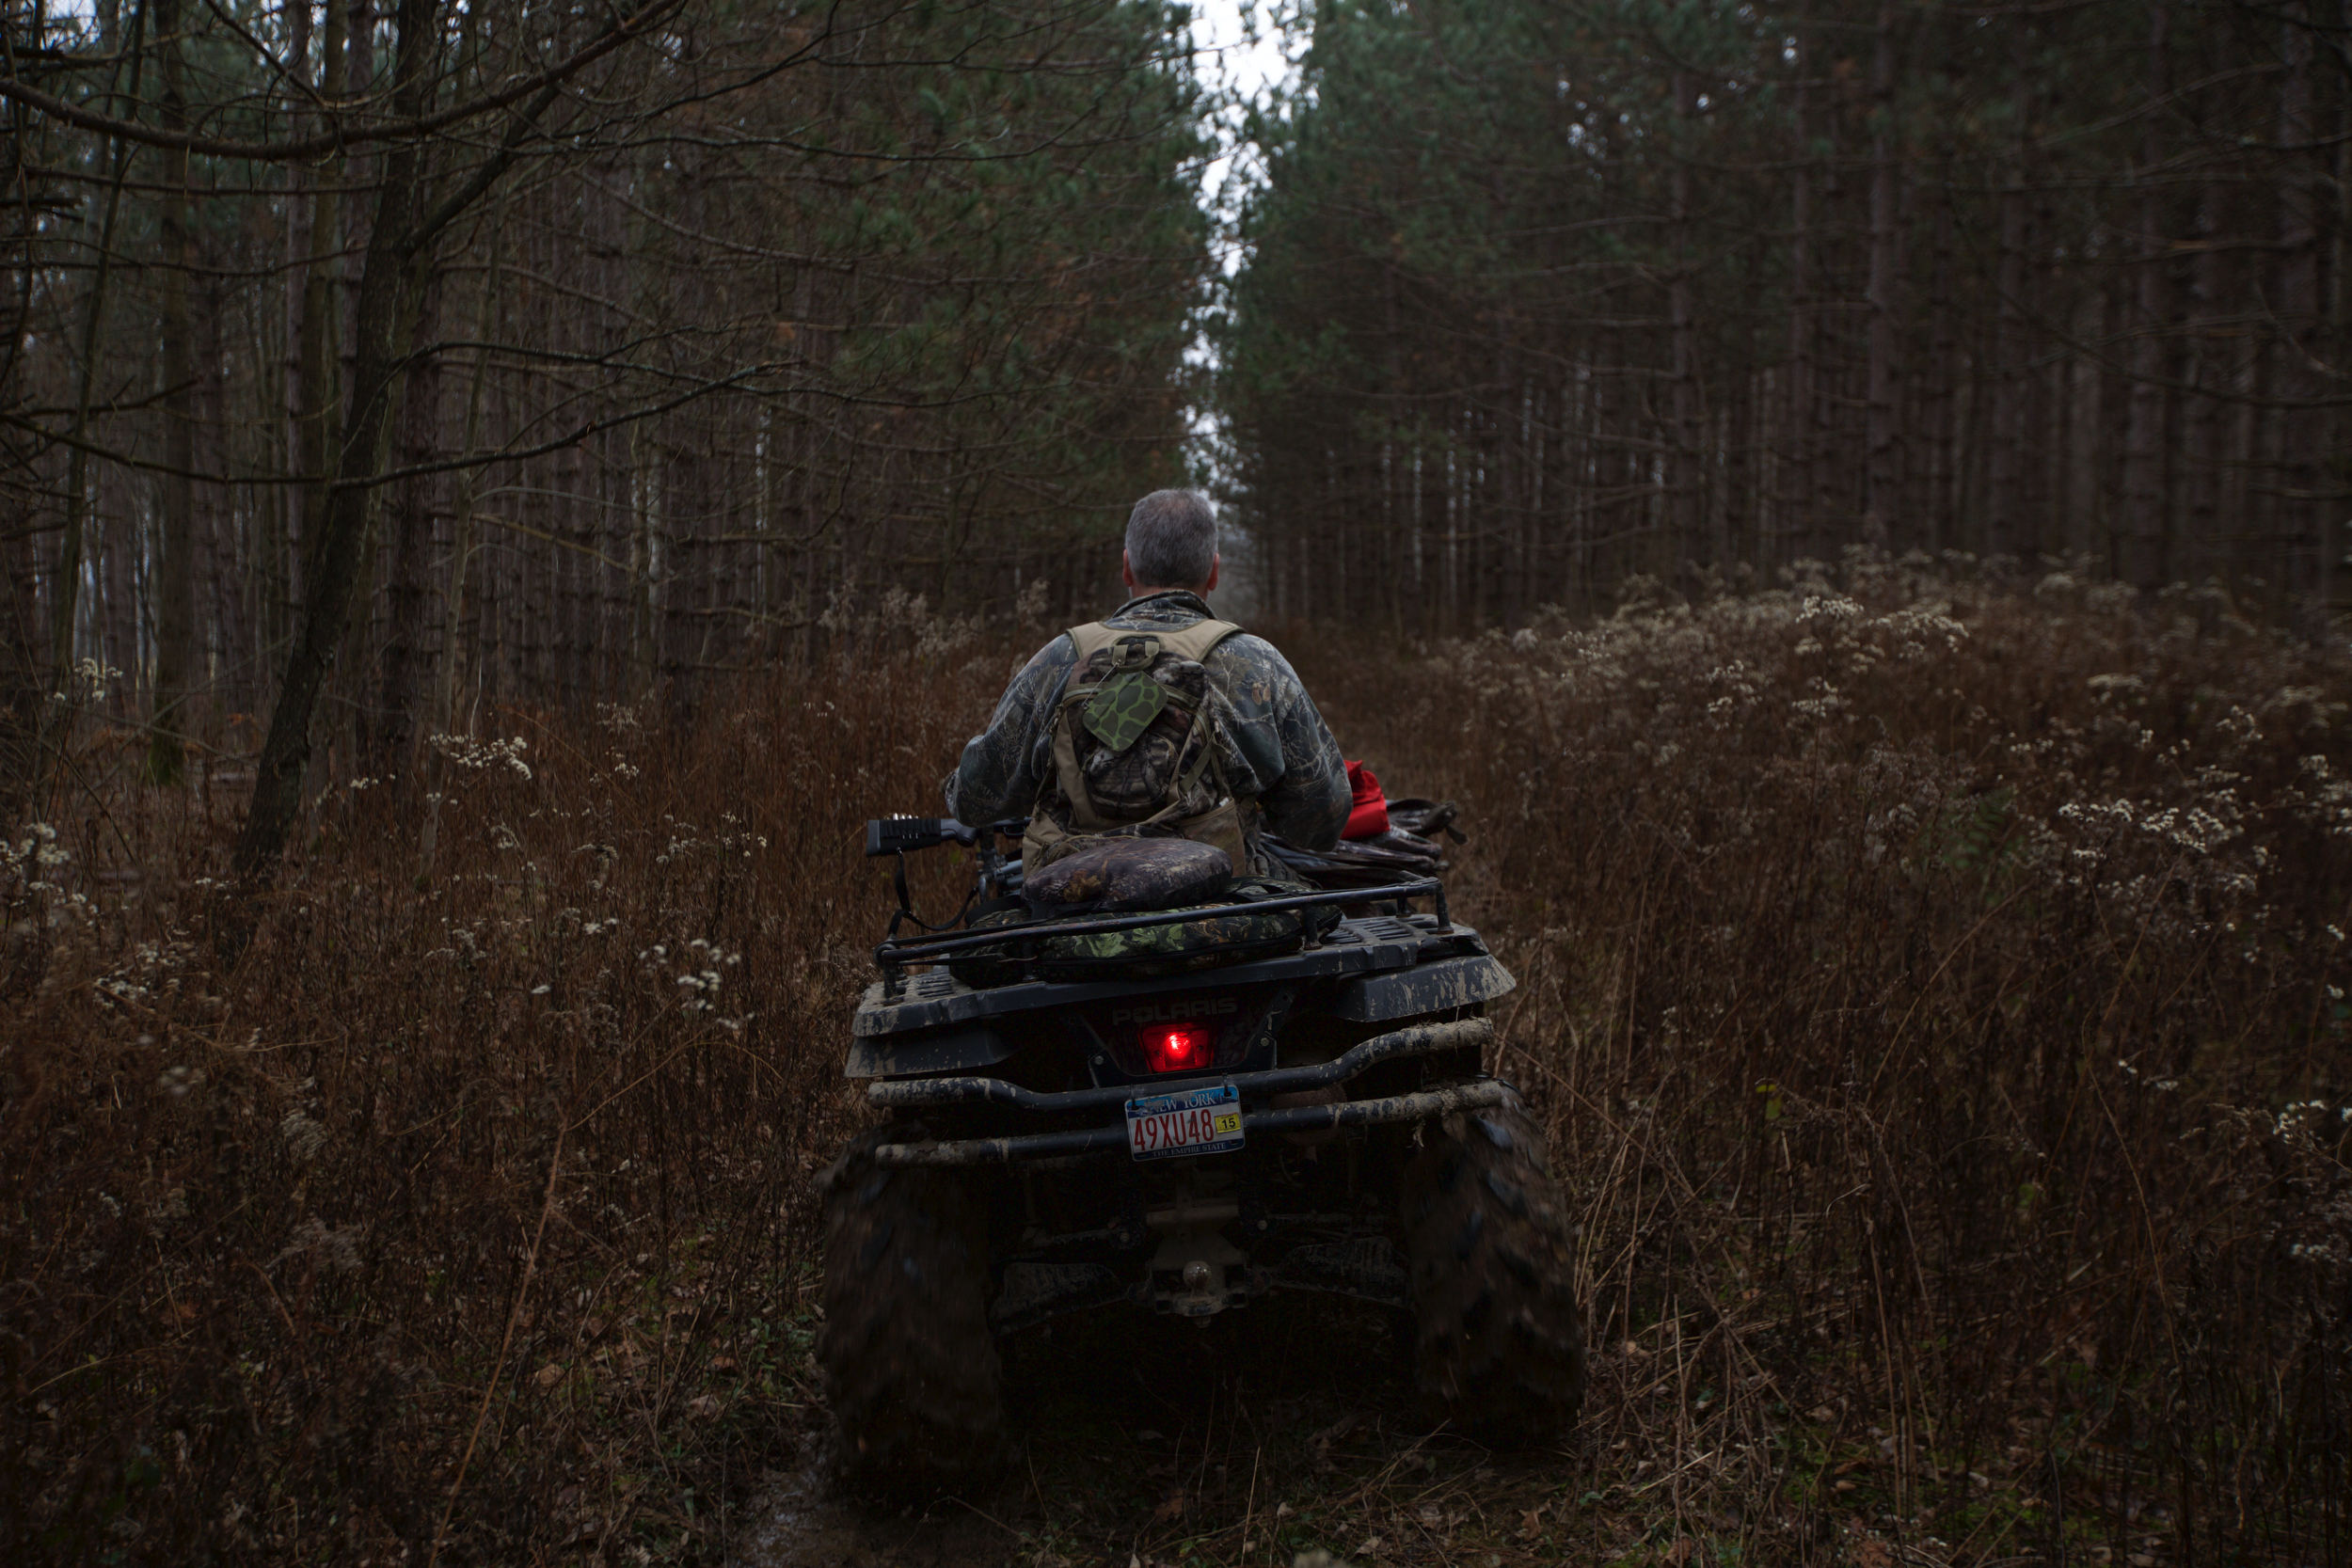 Ron rides his four-wheeler through the woods while hunting in Virgil, N.Y. Being in the woods relieves some of Ron's anxiety. Hunting is a big part of Ron's life but he has only been hunting once this season. Ron and Paul occasionally went hunting together.